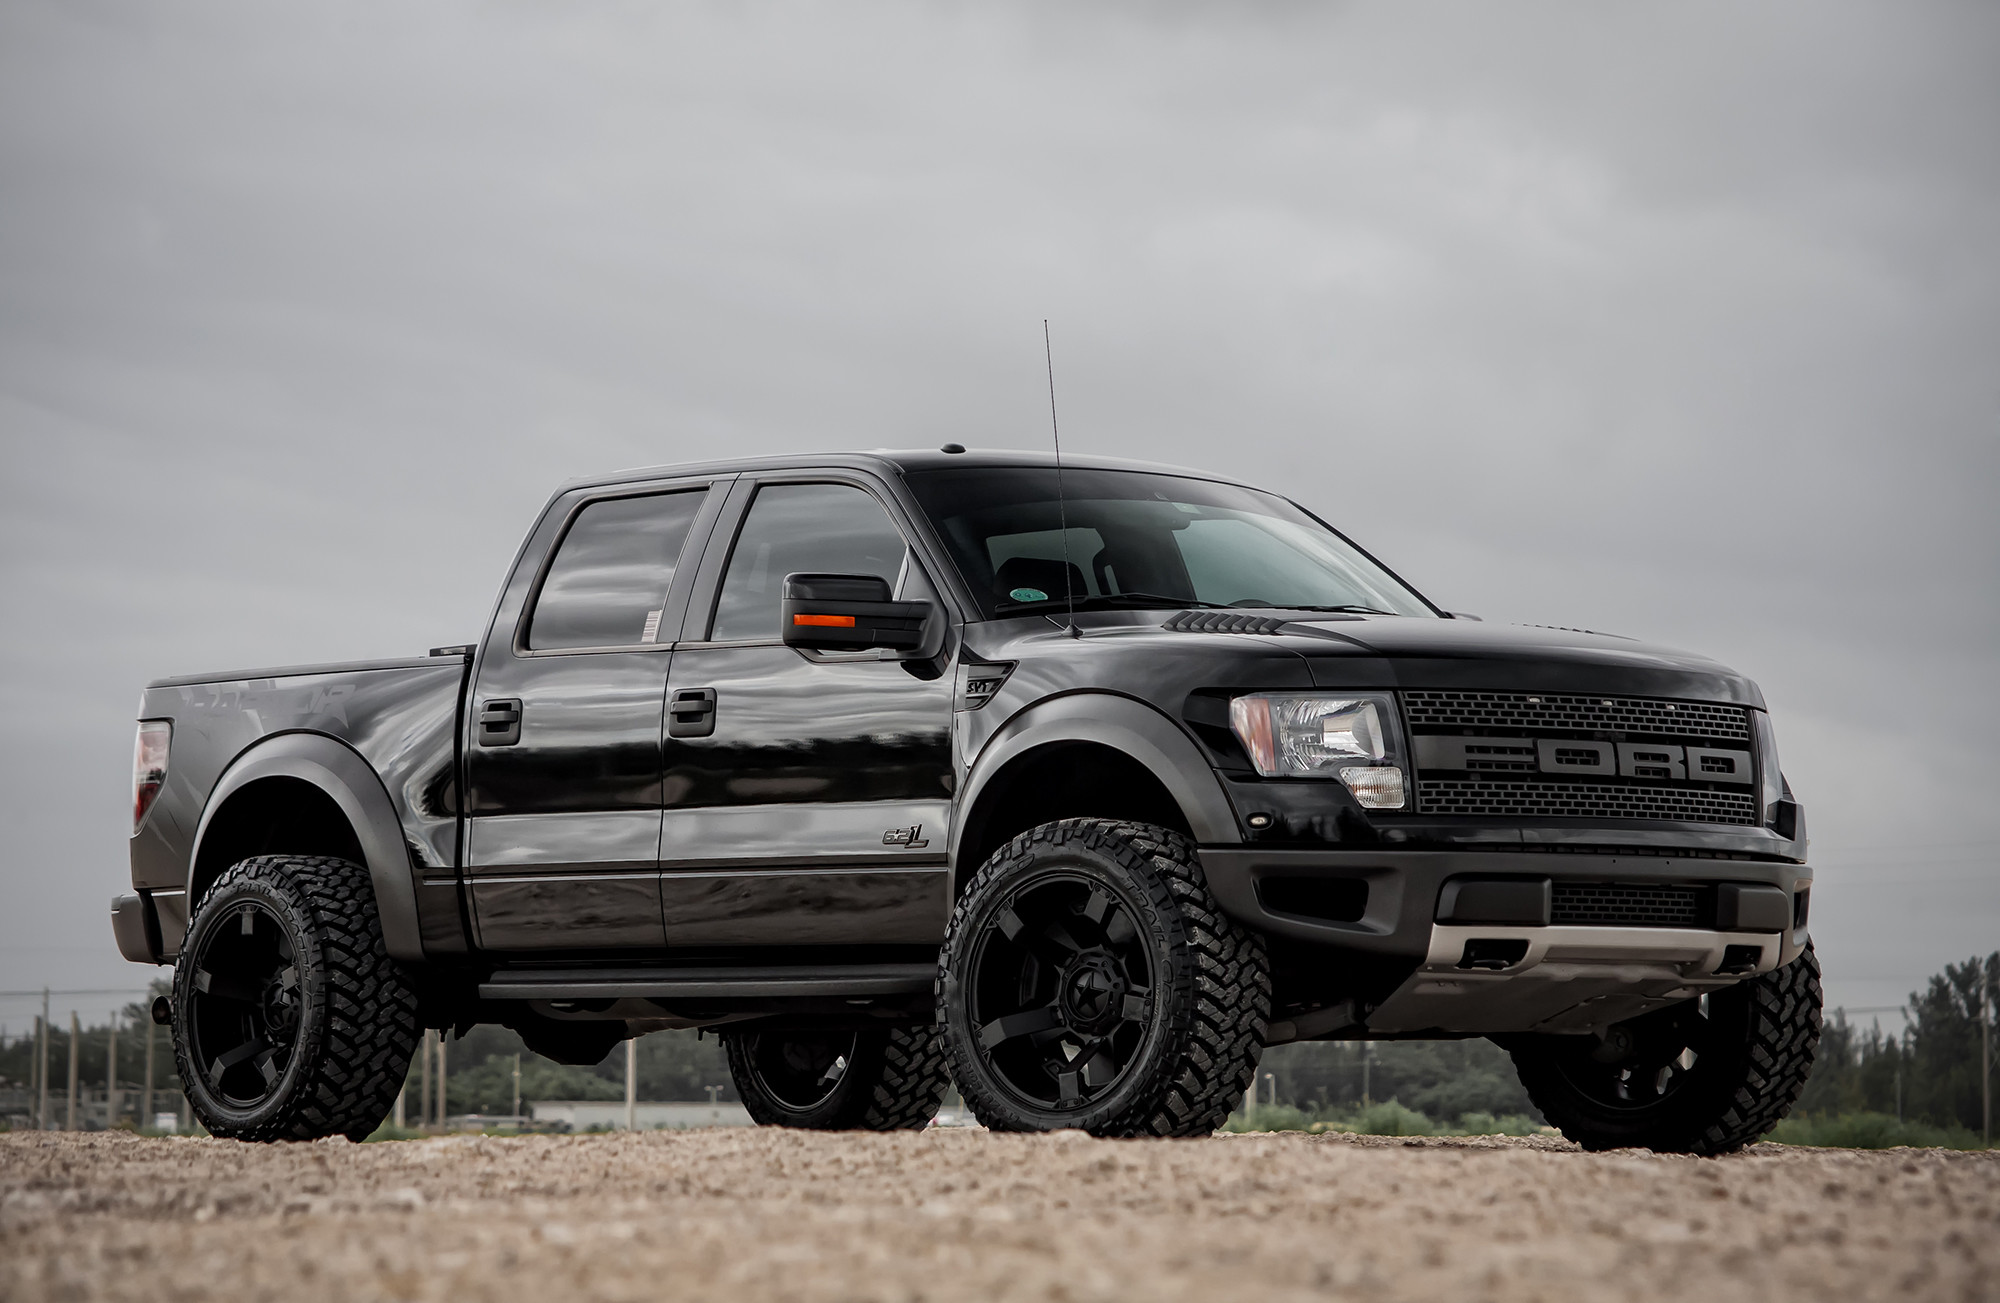 2000x1303 Customized Ford SVT Raptor Black With Suspension Leveling Wallpaper  Wallpaper